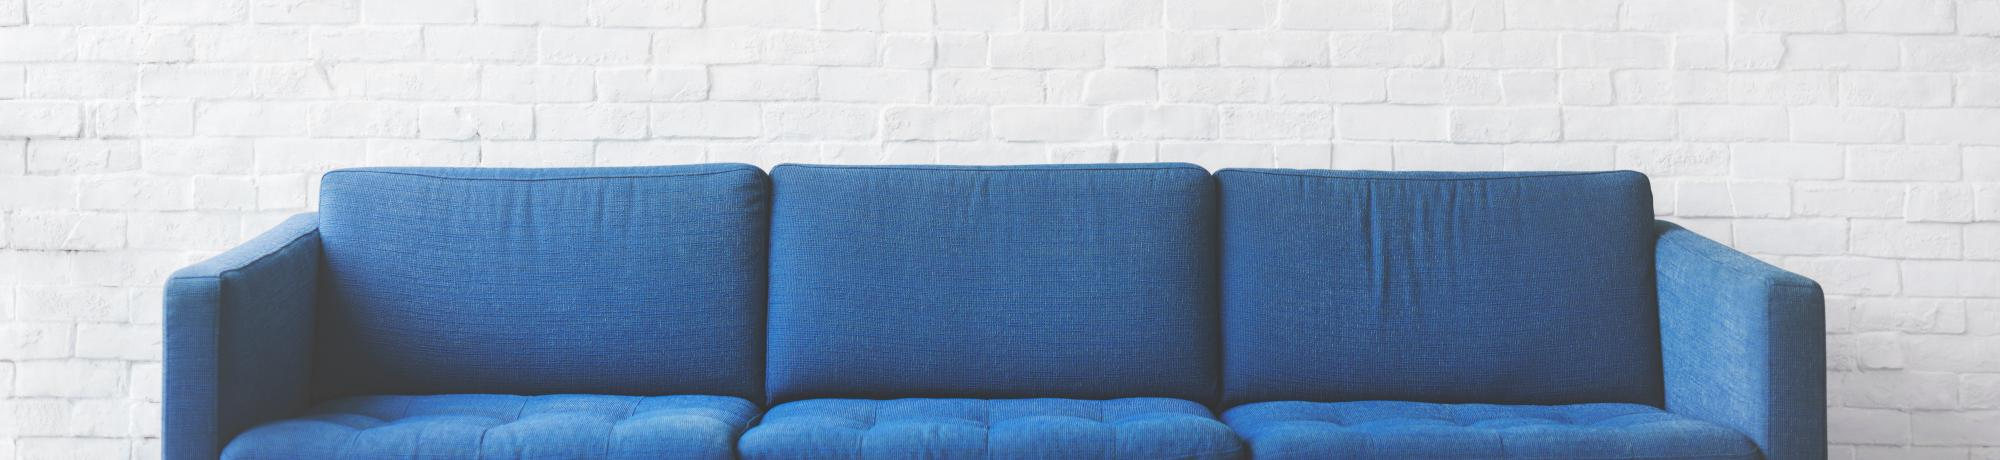 blue couch against white wall